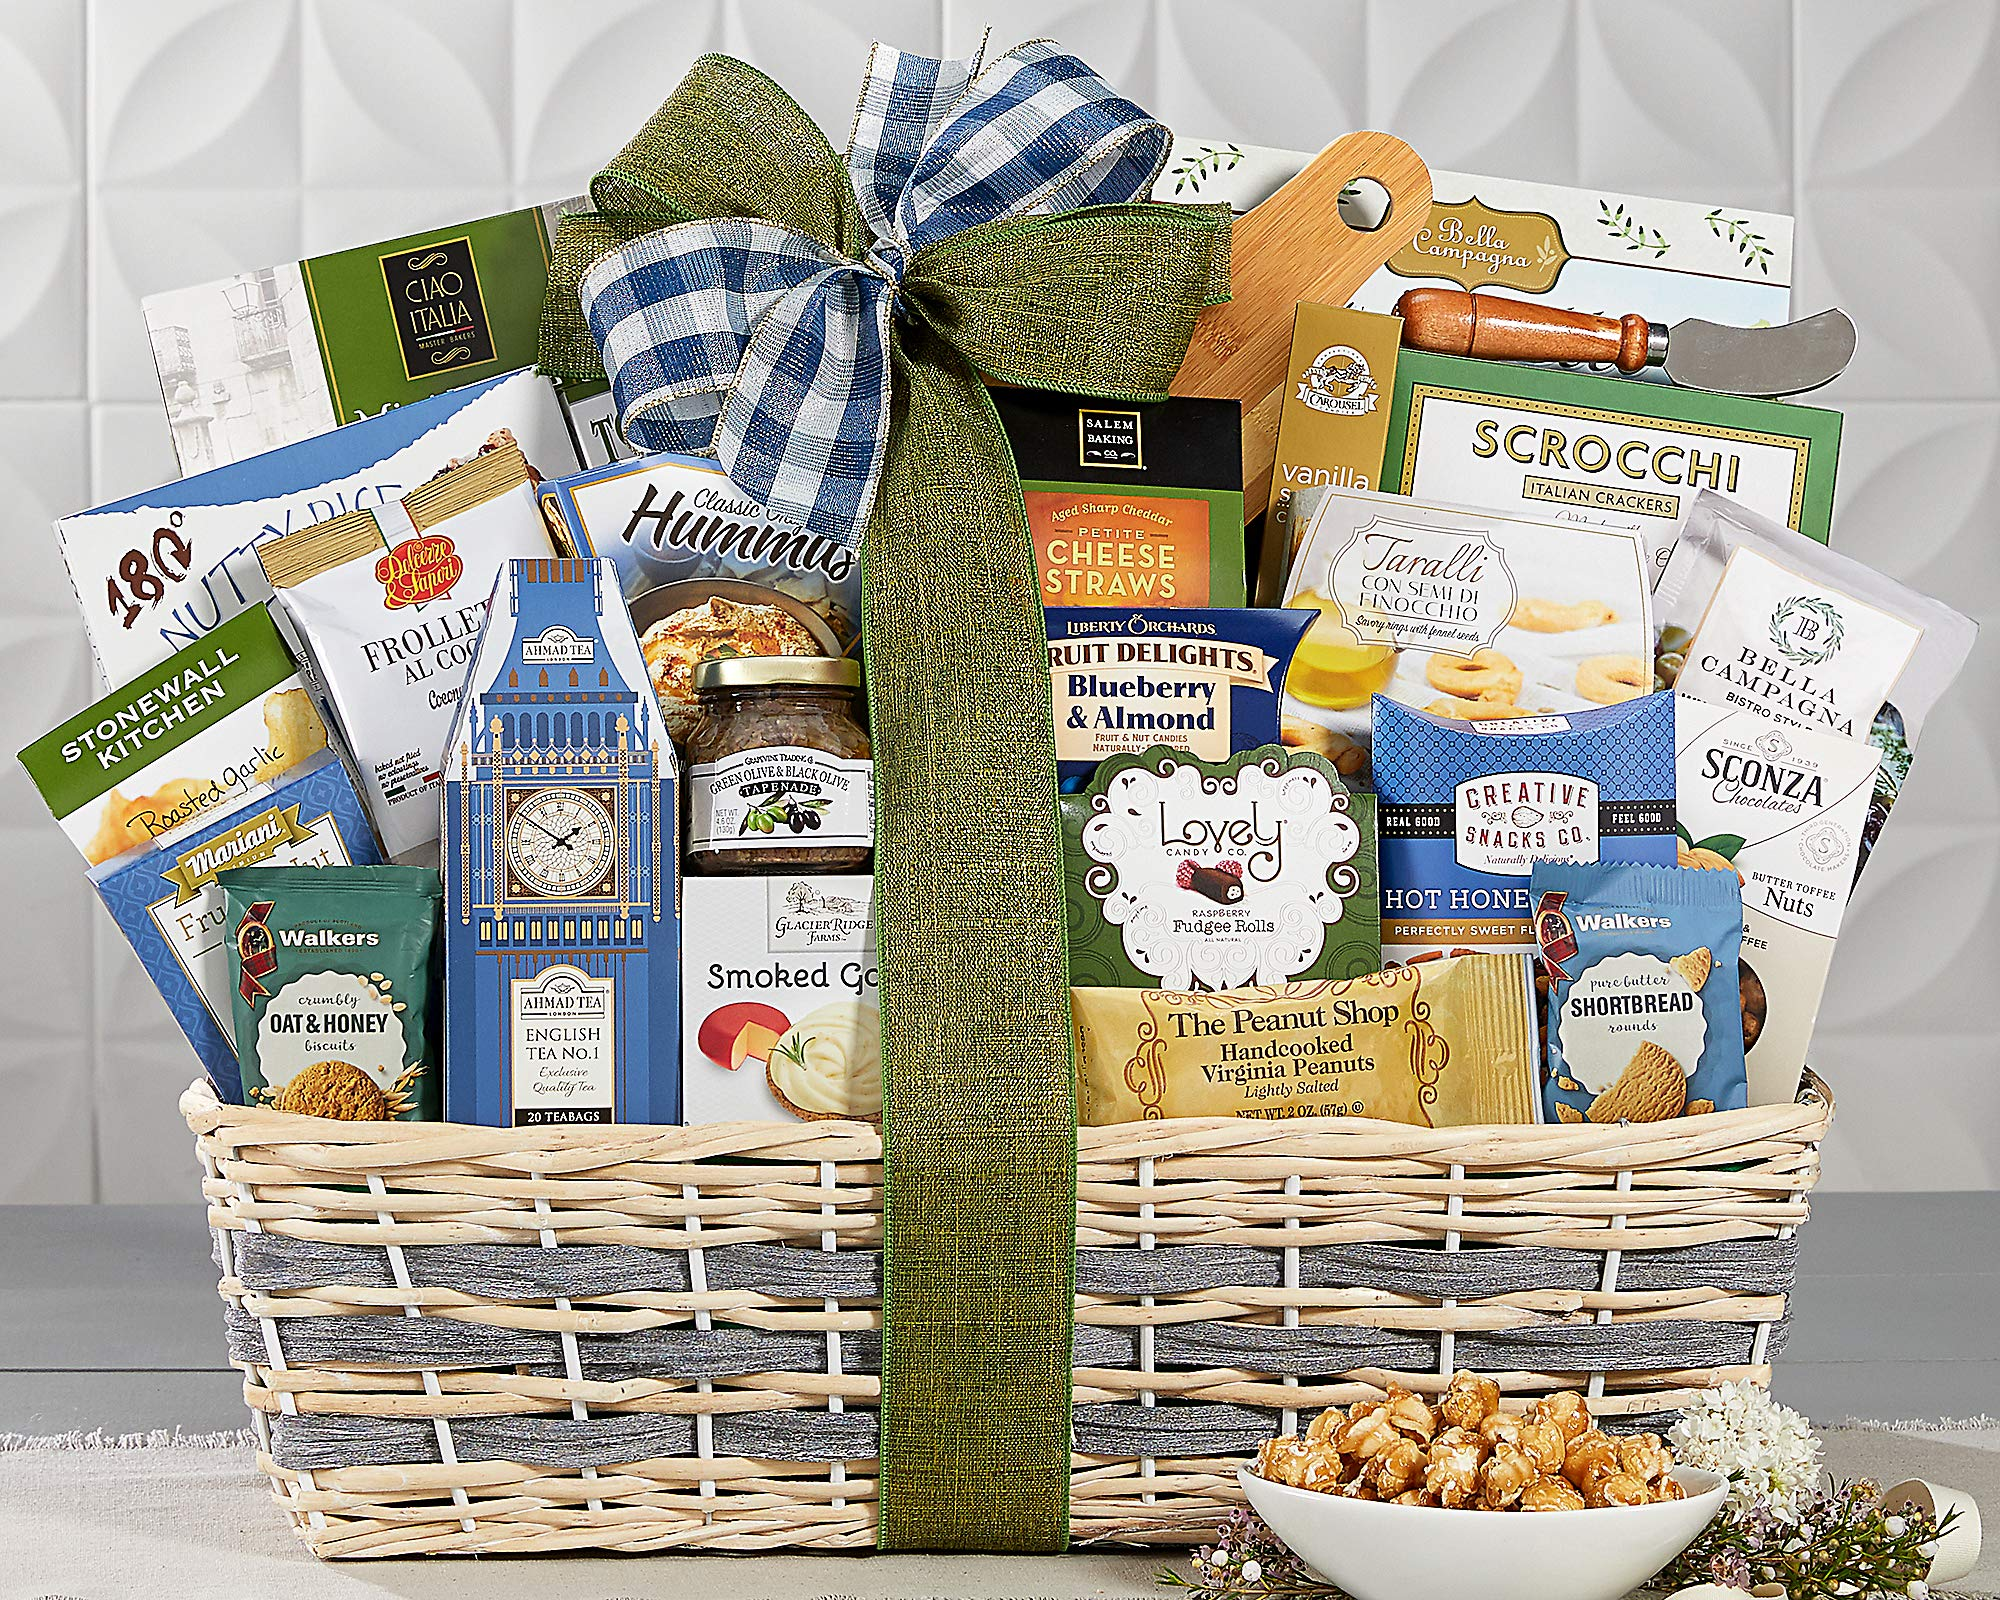 Wine Country Gift Baskets Gourmet Feast Perfect For Family, Friends, Co-Workers, Loved Ones and Clients. A Great Gift This Holiday Season by Wine Country Gift Baskets (Image #2)